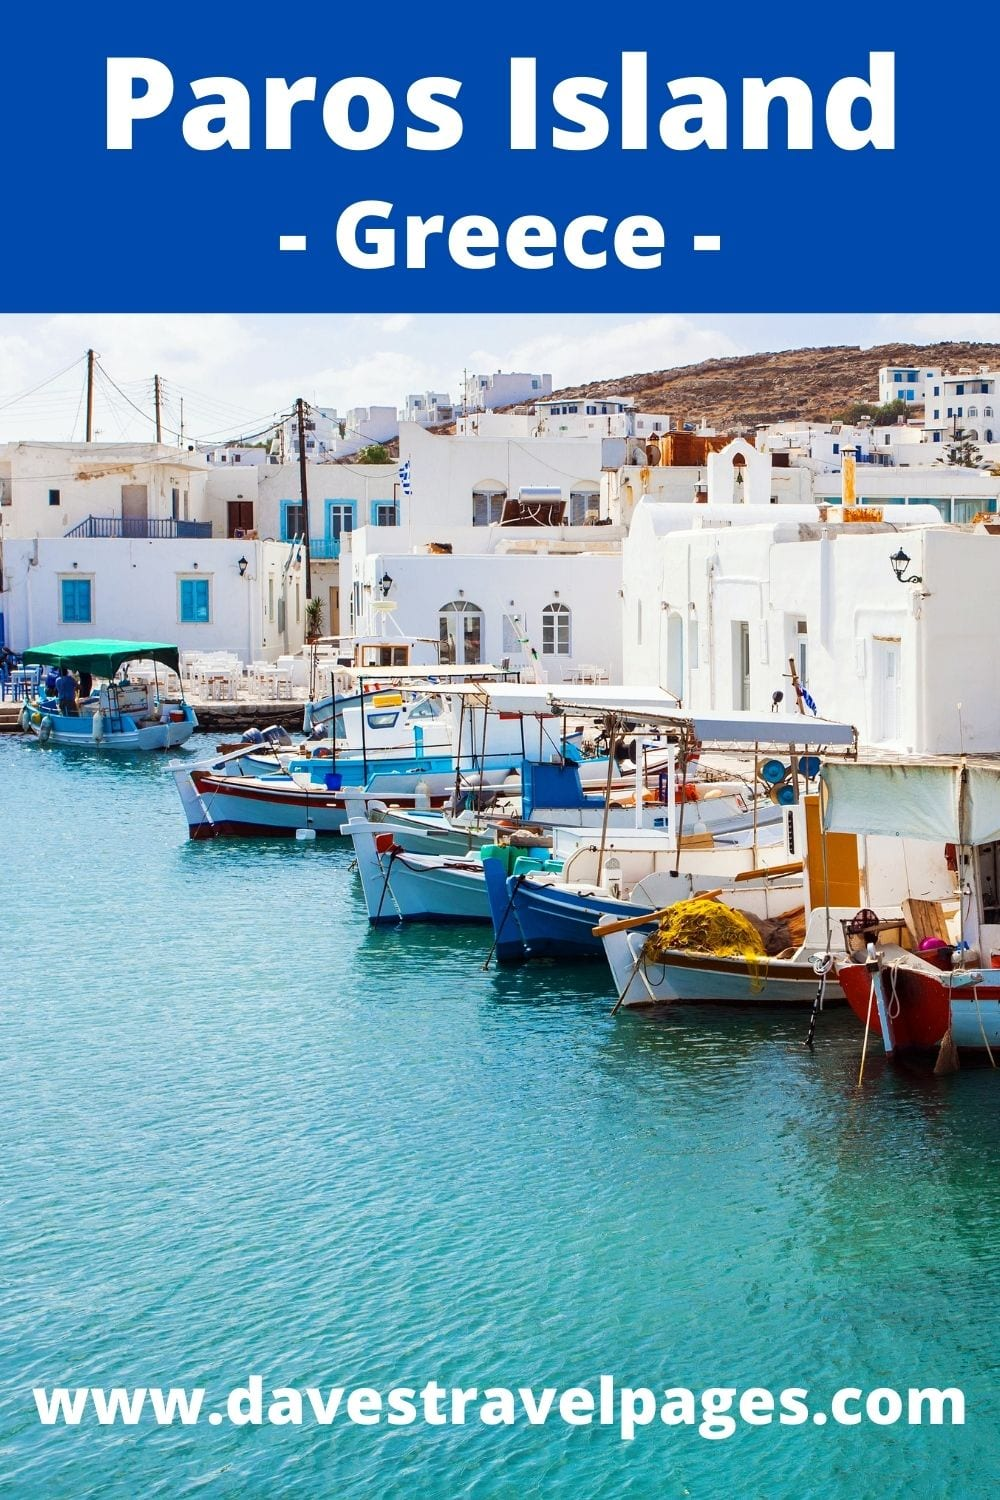 How to get to Paros island from Mykonos